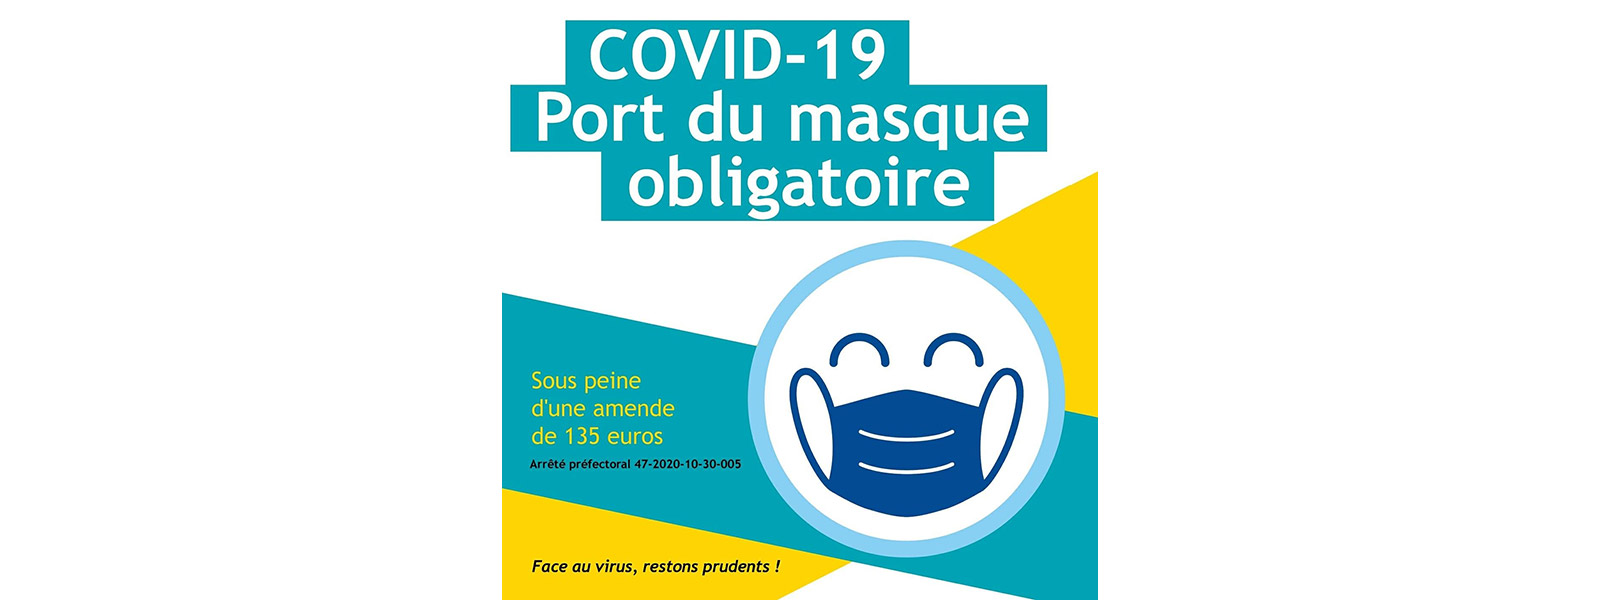 COVID-19 : Extension de l'obligation du port du masque